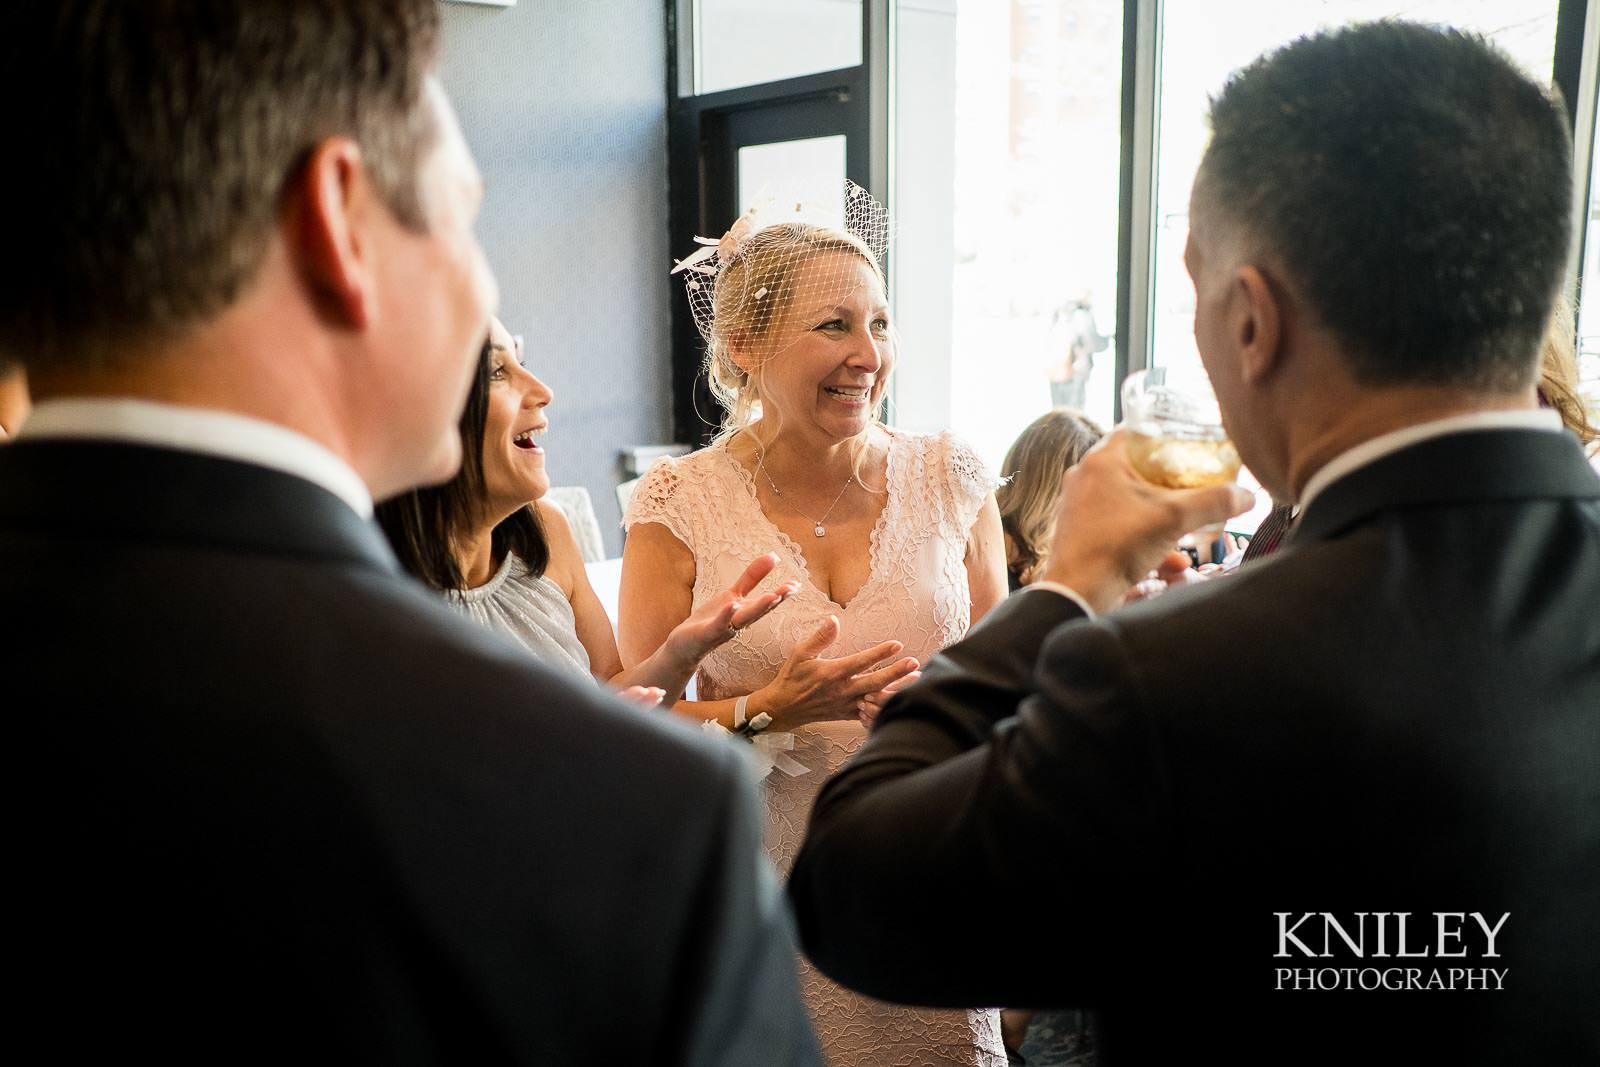 44-Max-of-Eastman-Wedding-and-Reception-Rochester-NY-Kniley-Photography.jpg